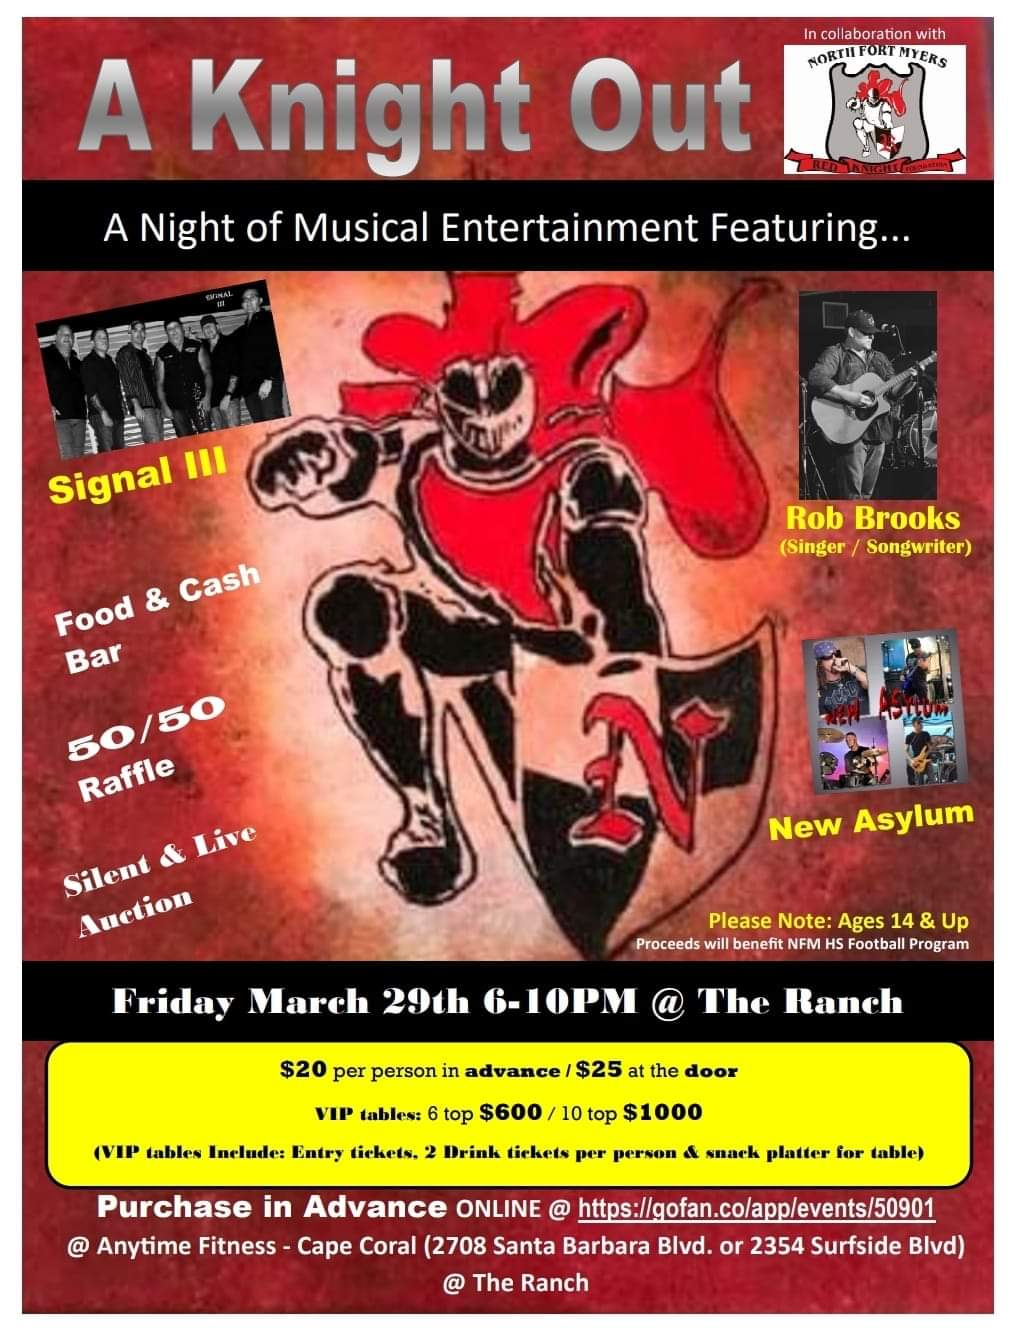 Signal III Charity Performance set for March 29th at The Ranch in Fort Myers